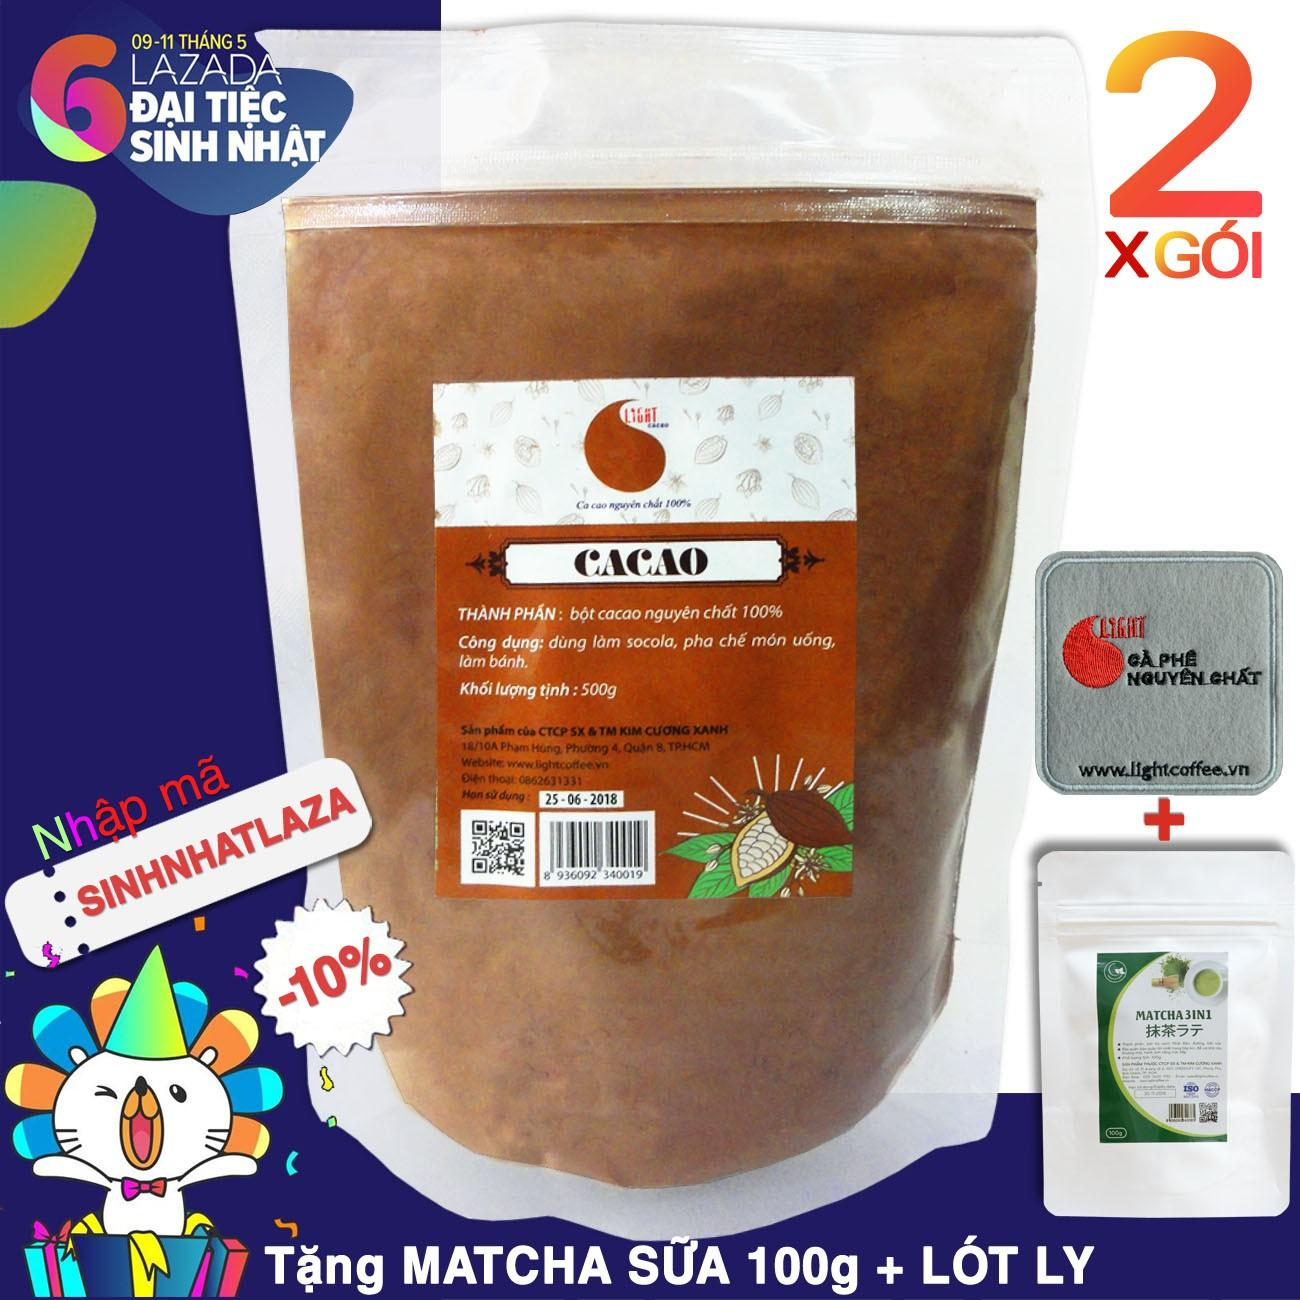 Giá Bán 02 Packs 1Kg Of 100 Pure Cacao Powder Light Cacao Trực Tuyến